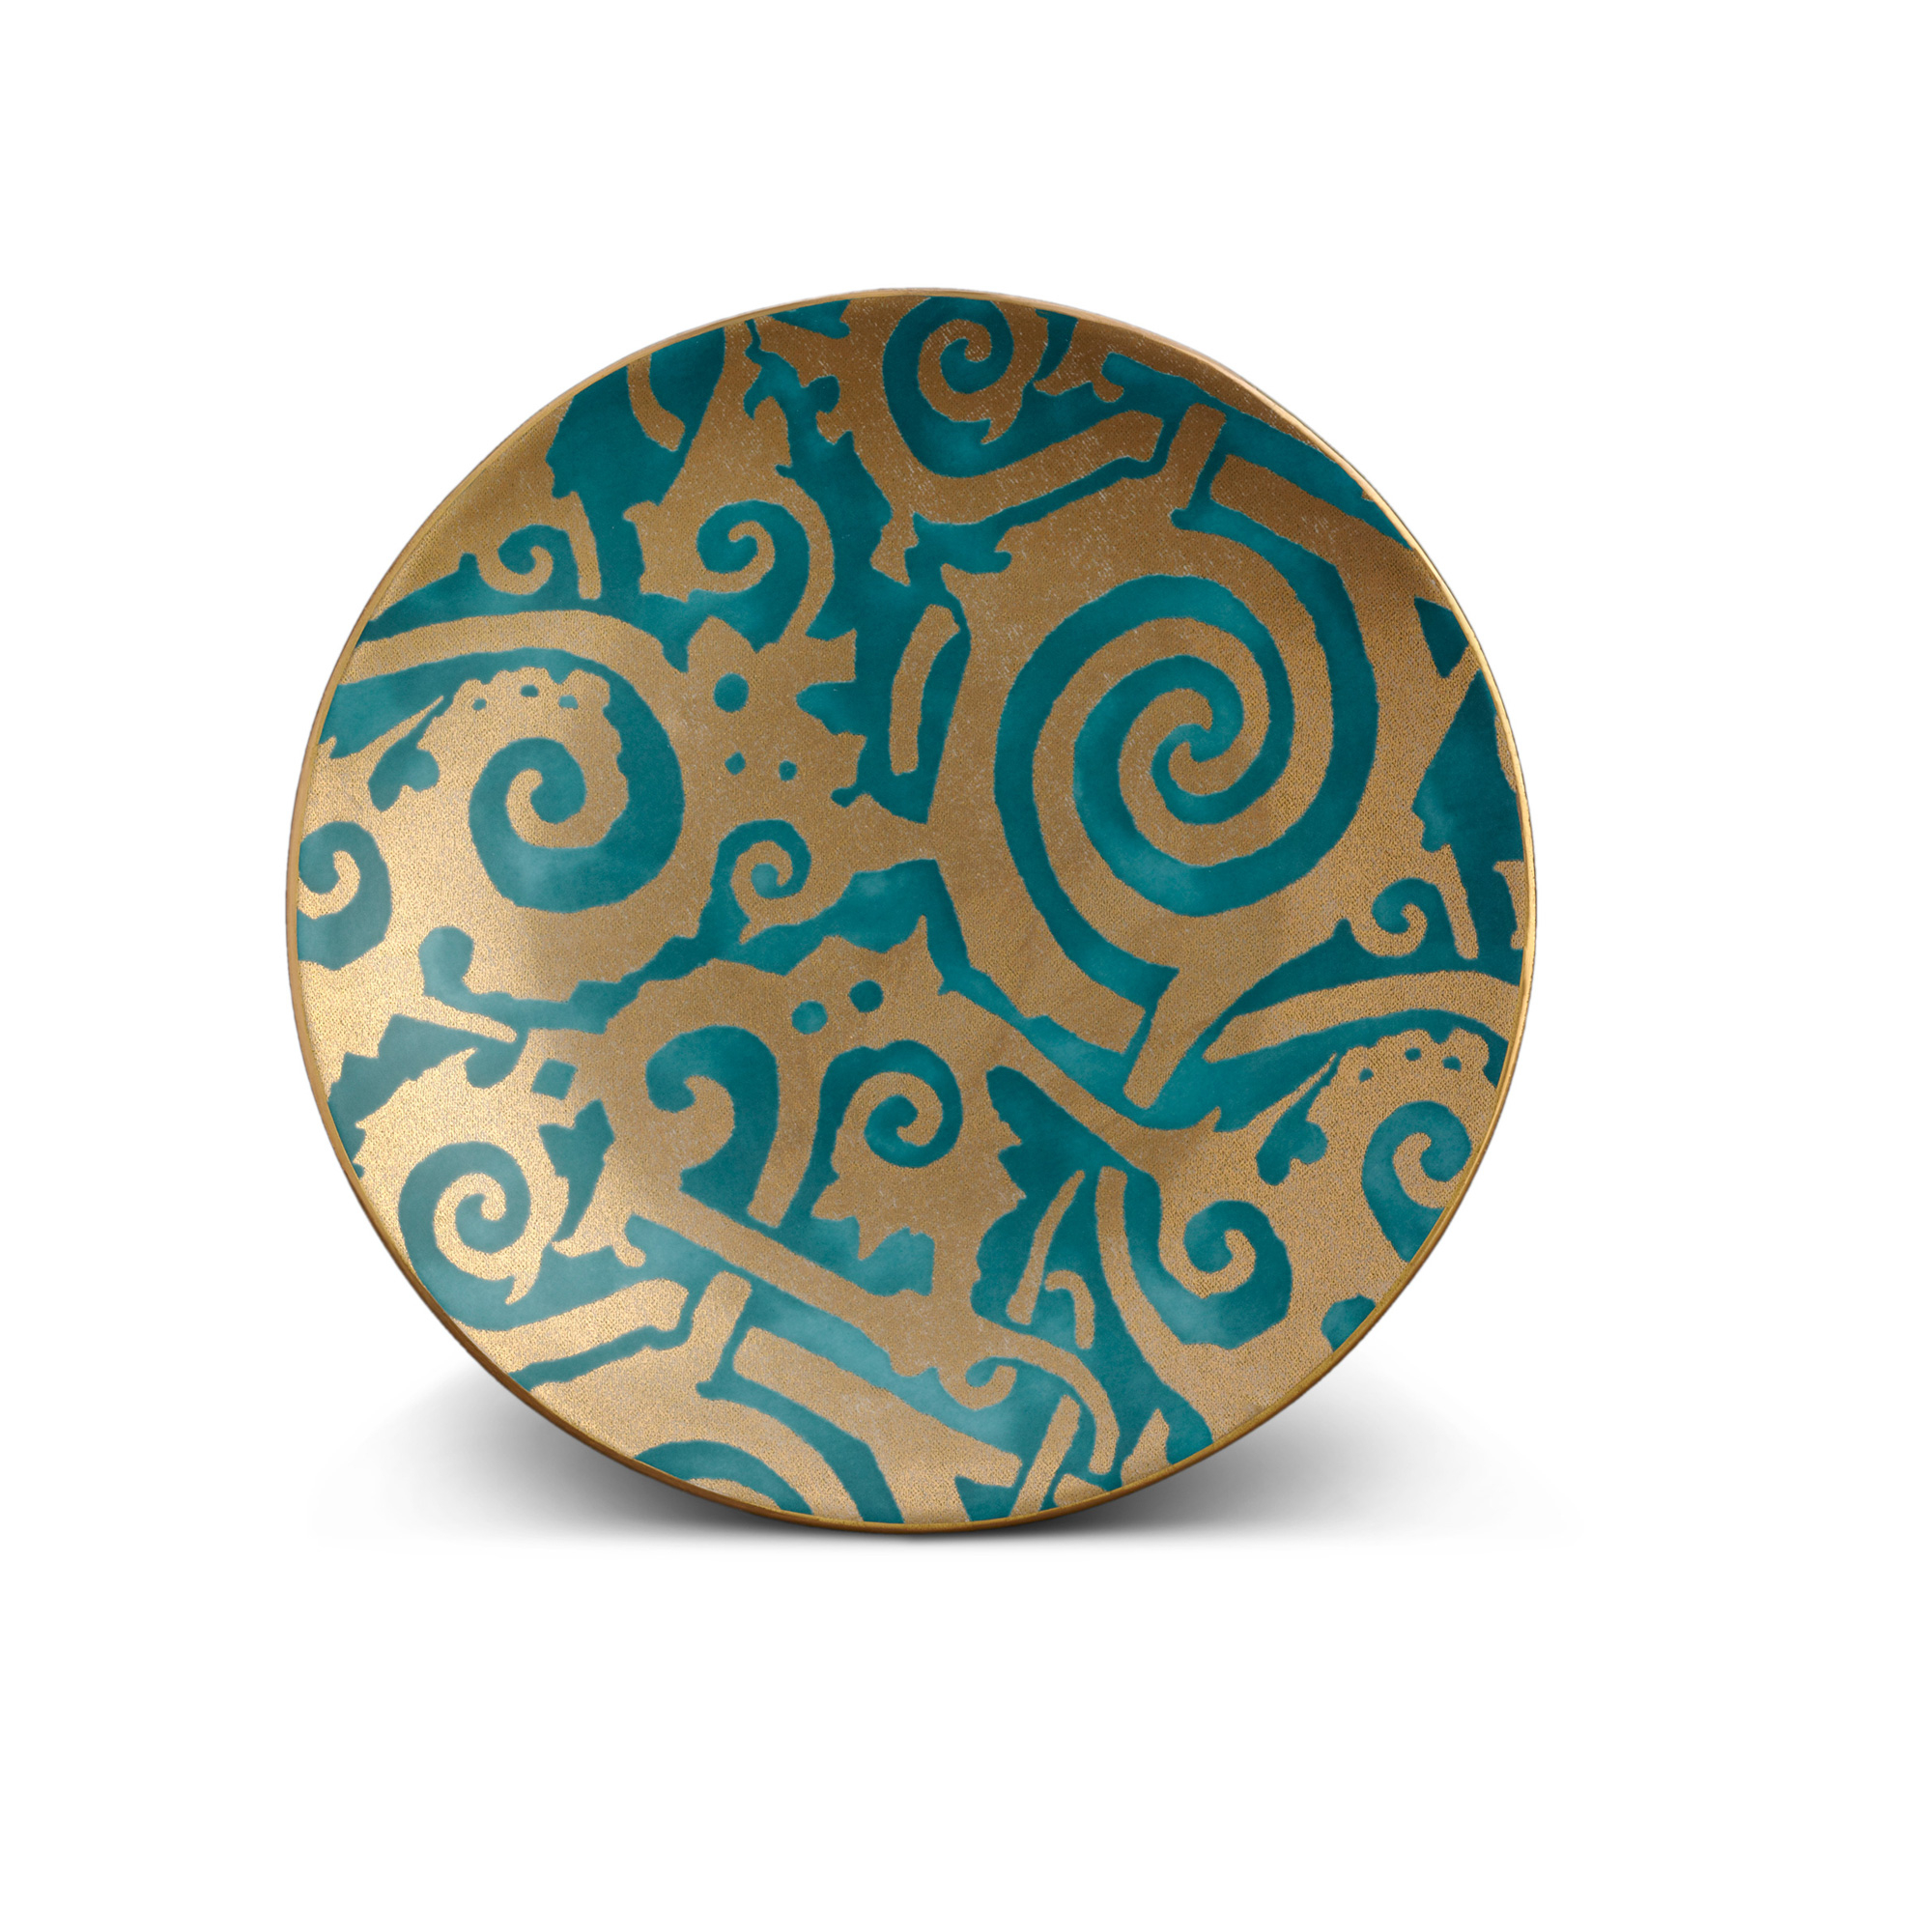 L'Objet Fortuny Maori Blue Dessert Plates, Set of 4